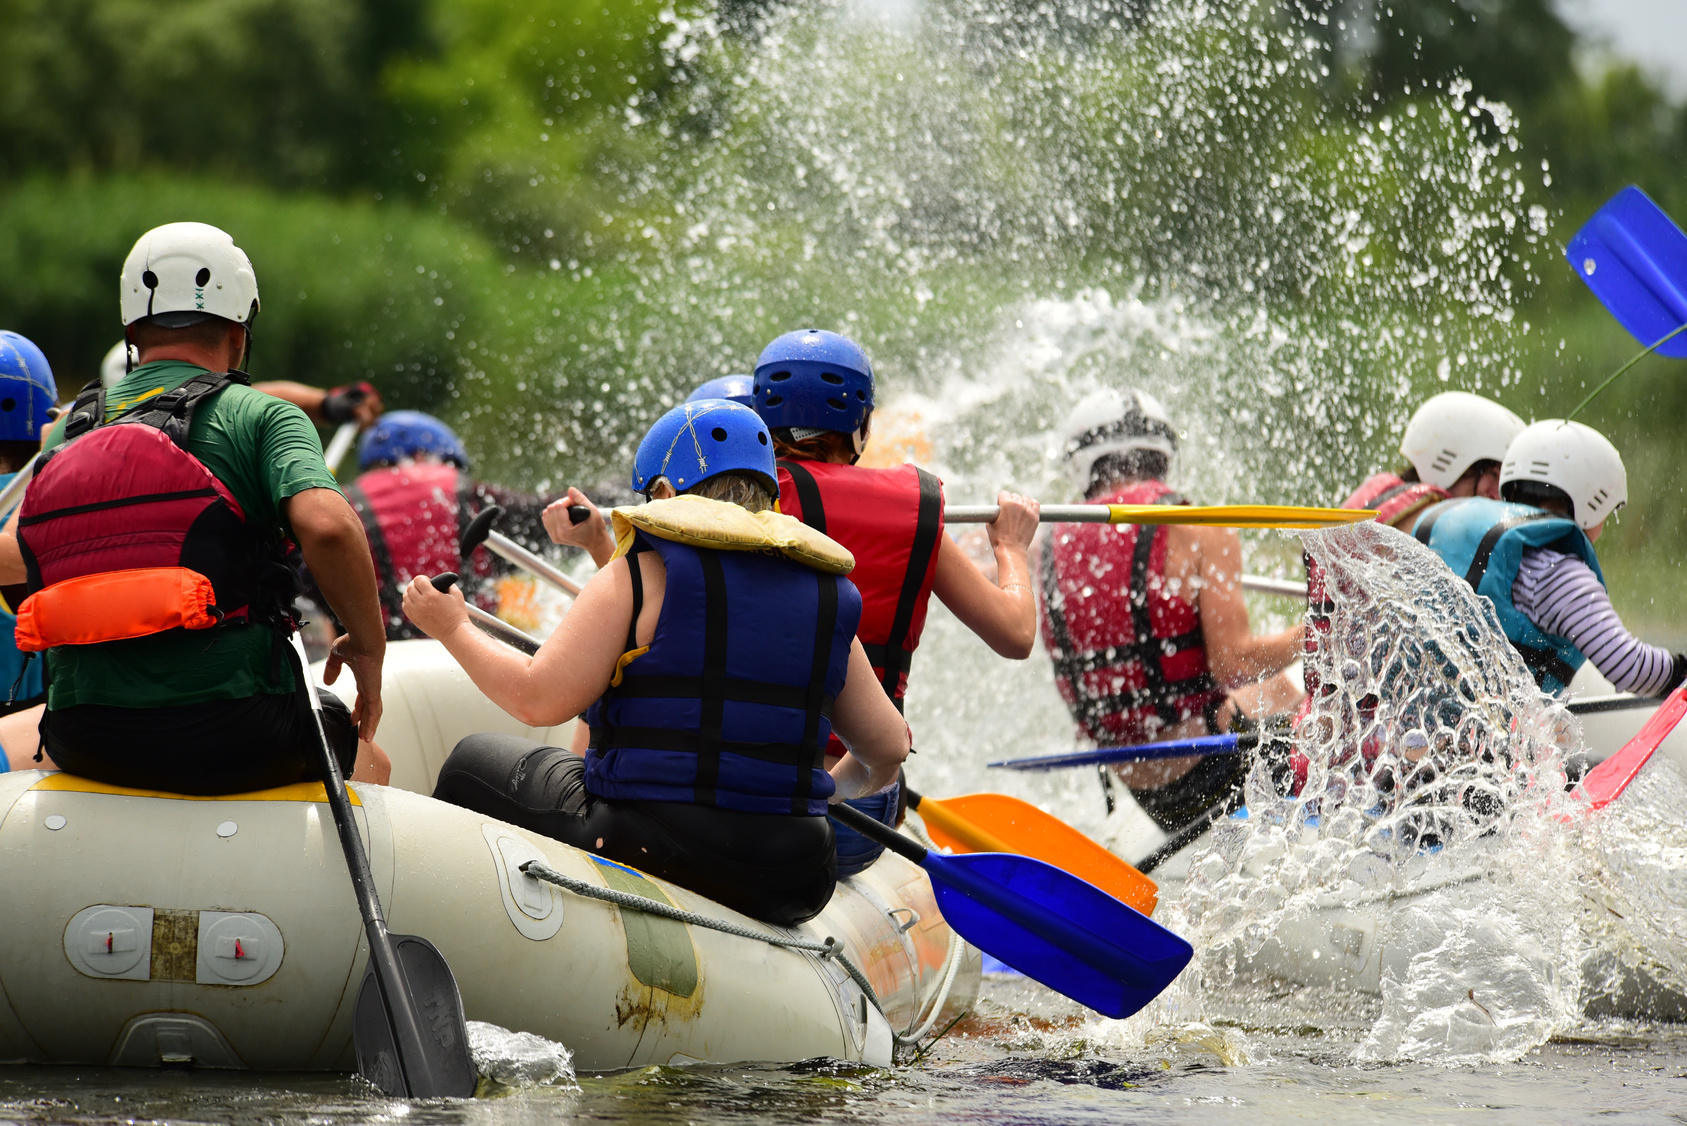 White Water Rafting - On the new river – world famous river rafting. Class VI River Runners.